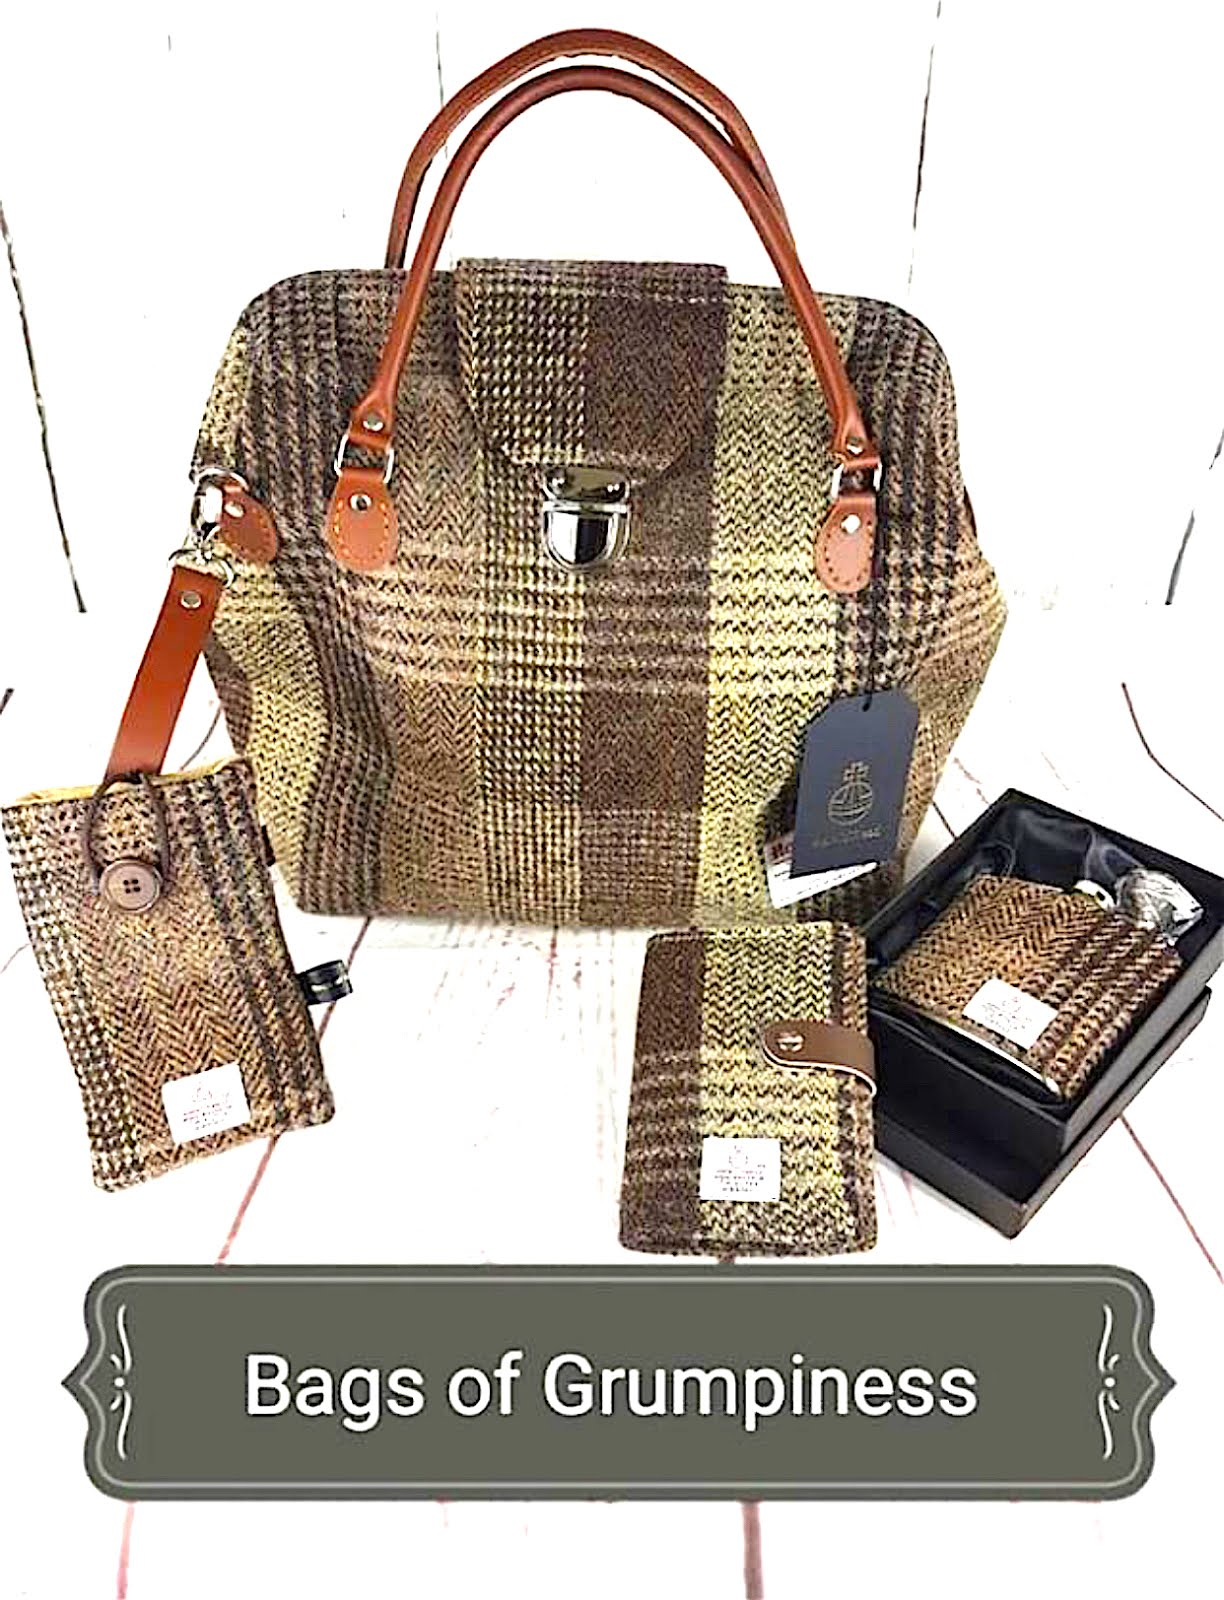 Bags of Grumpiness